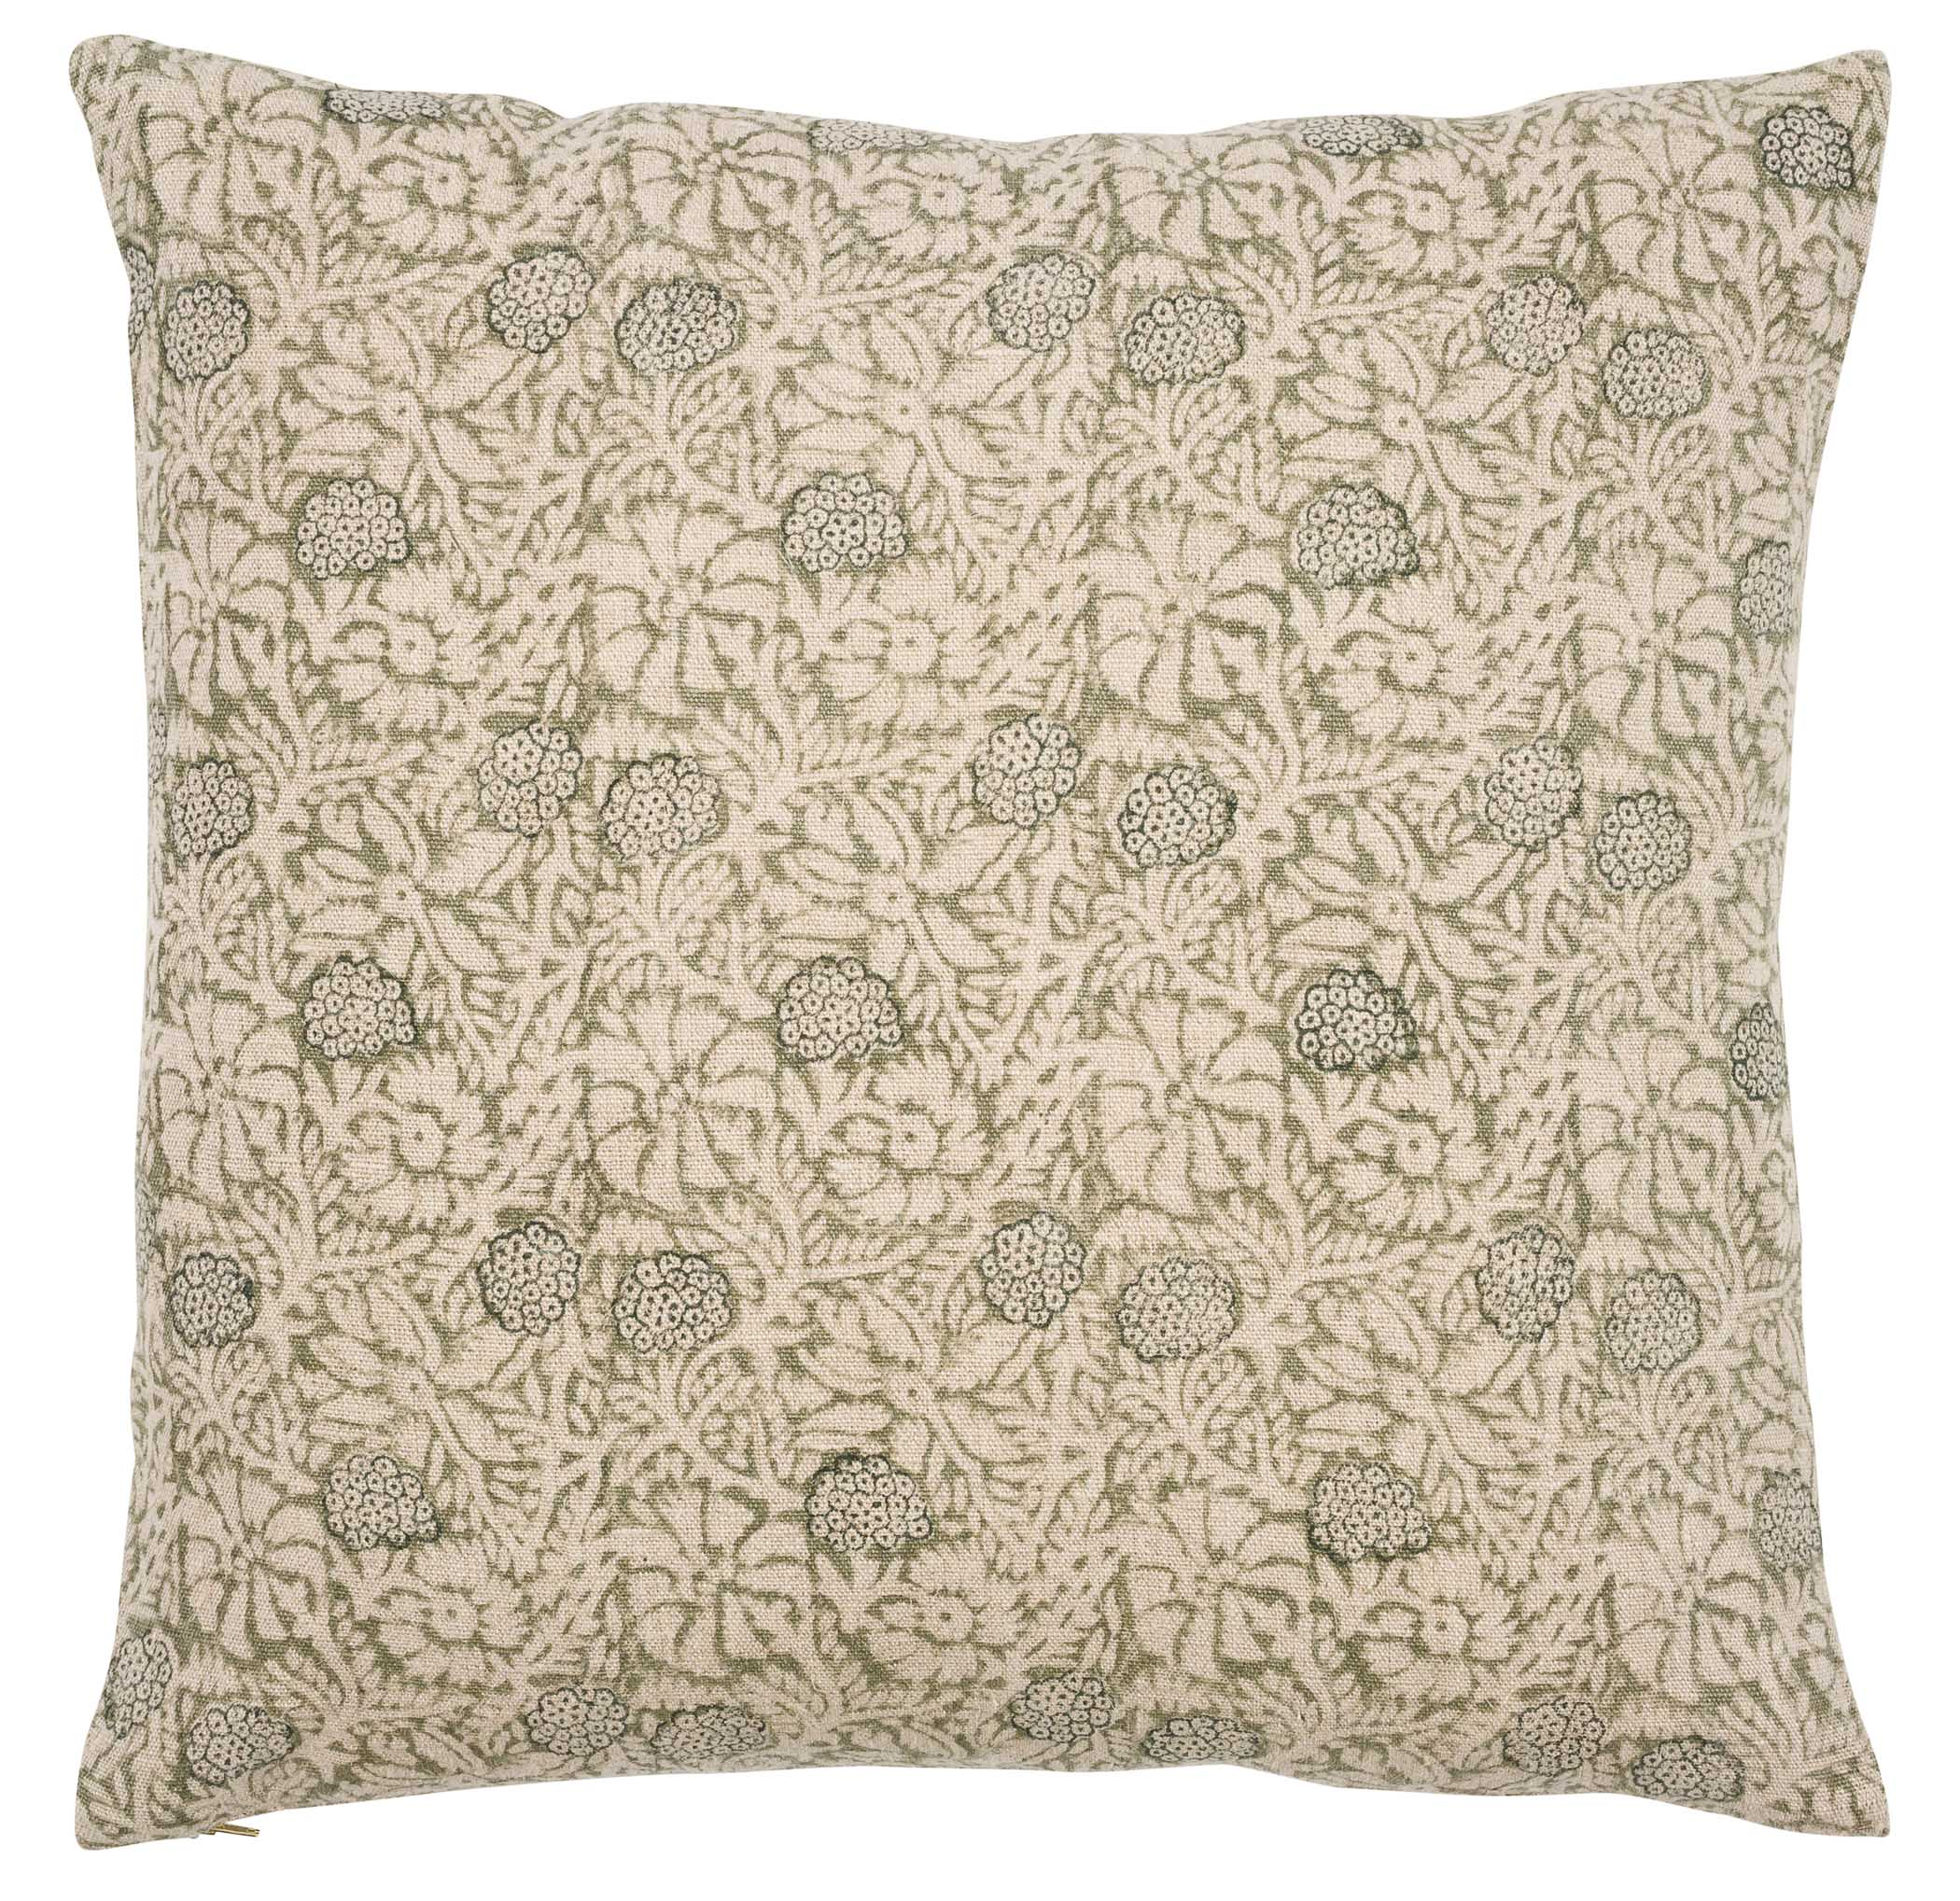 Cushion Cover - Meadow - Green